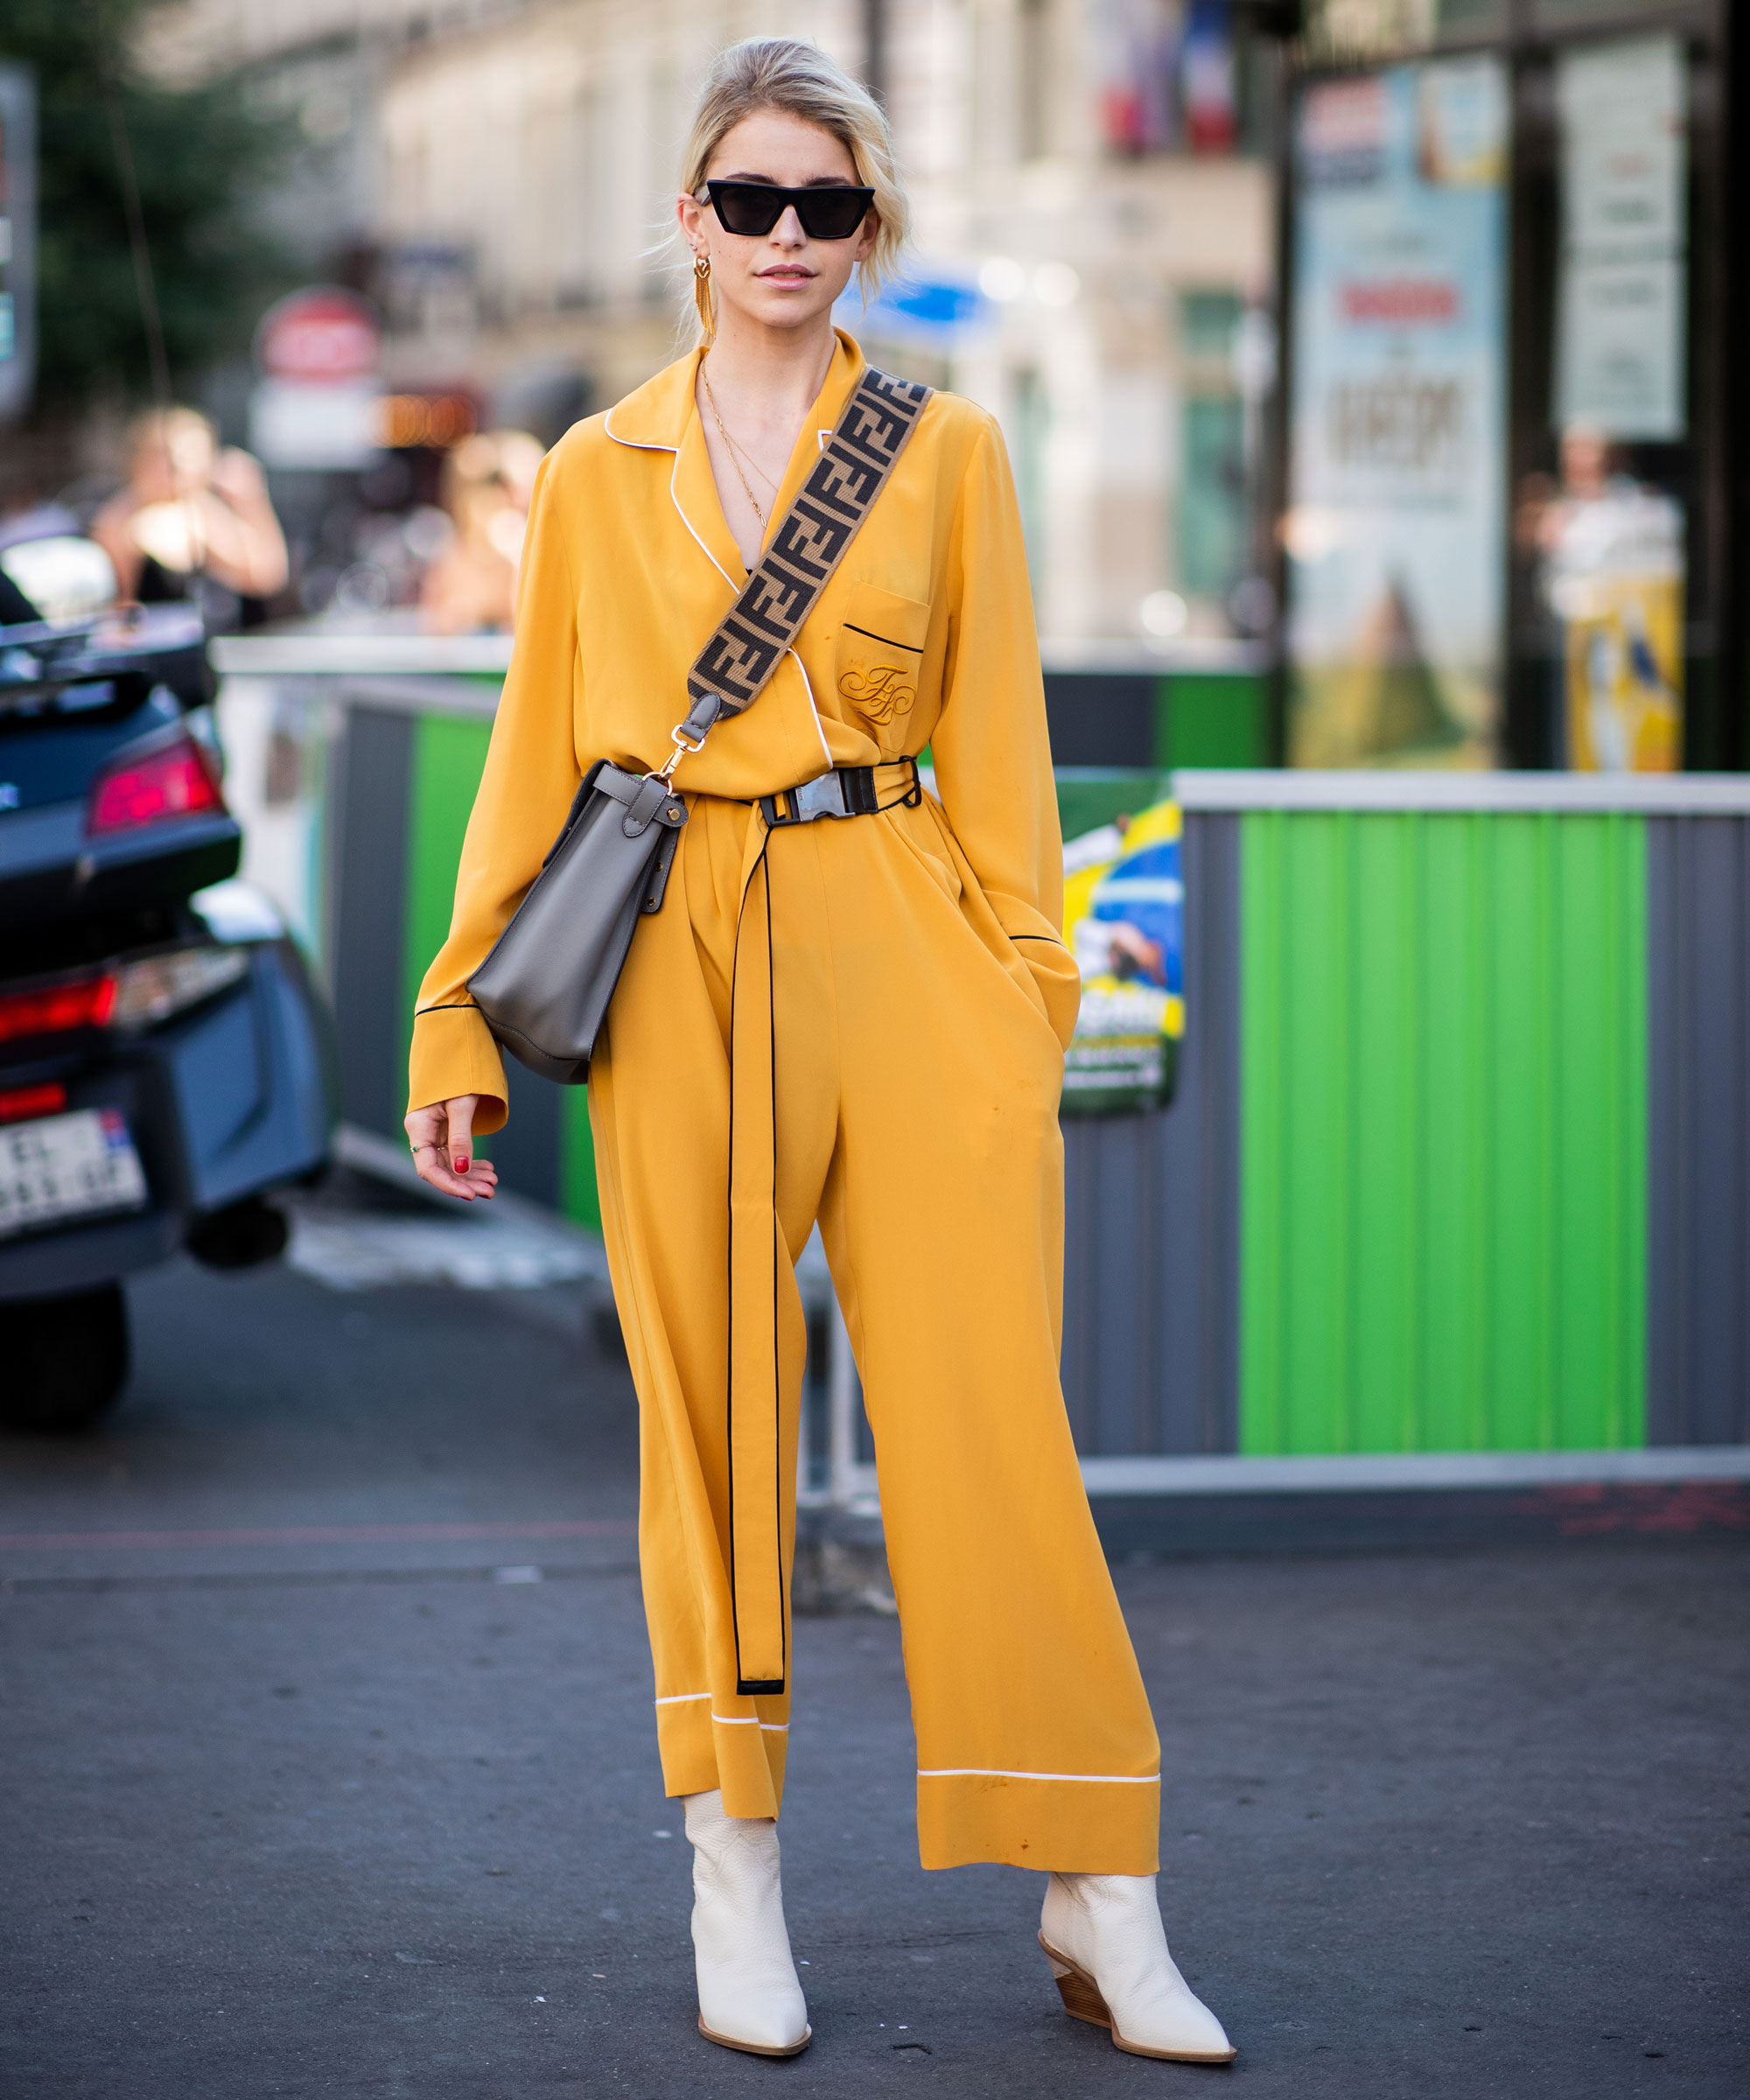 A woman wearing a yellow jumpsuit